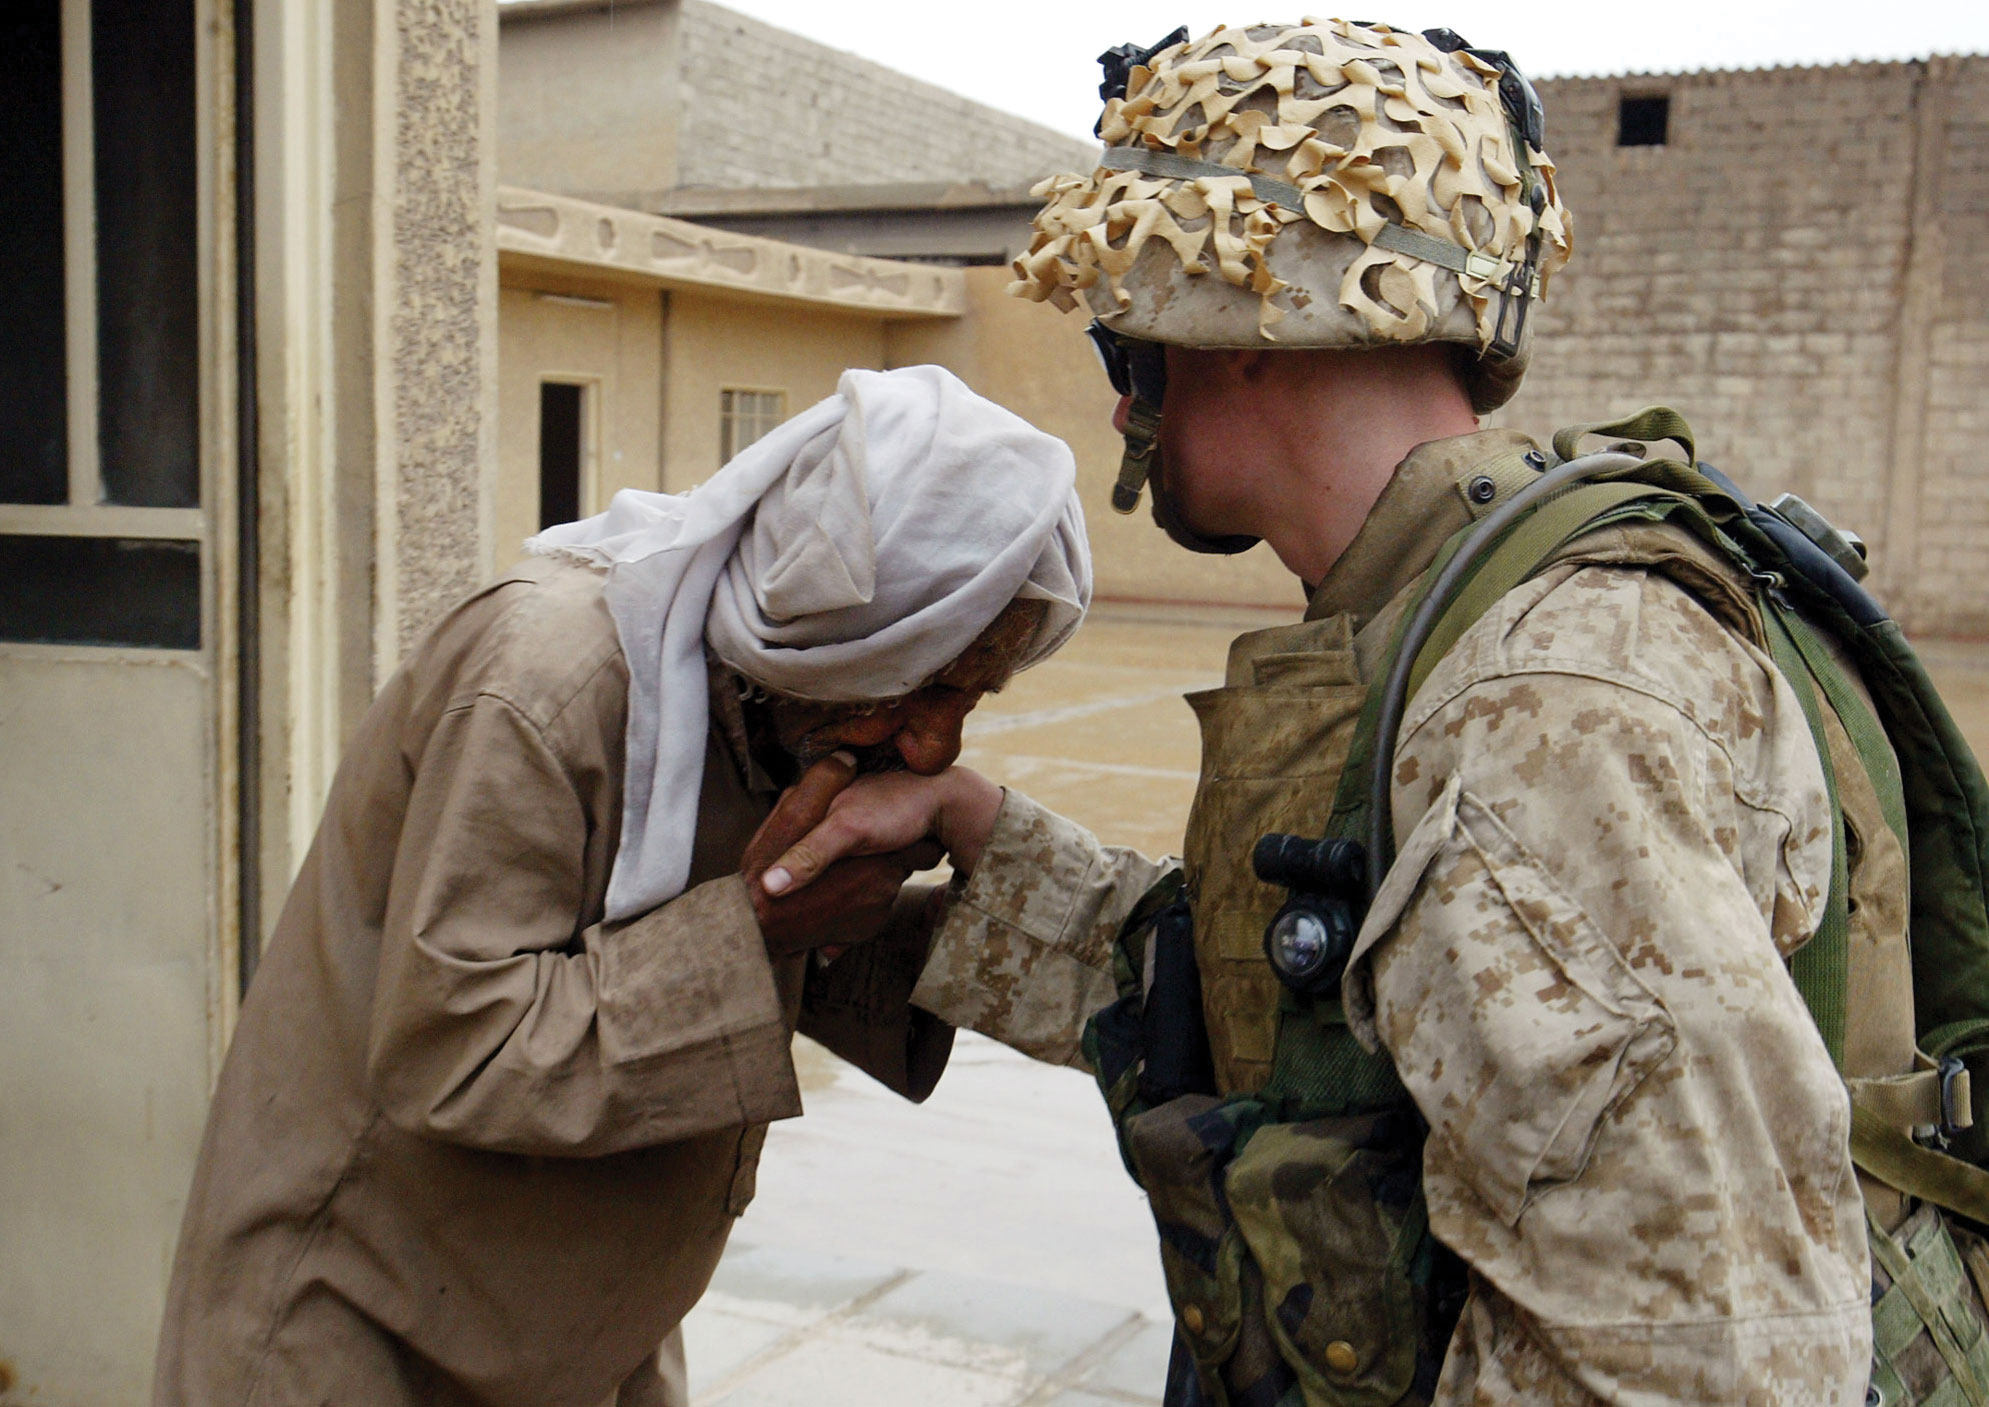 An Iraqi civilian kisses the hand of U.S. Marine Cpl. Joseph Sharp from Peoria, Ill., after Marines from the 1st Battalion 5th Marines gave him a supply of food and water in Fallujah, Iraq, Monday, April 19, 2004.